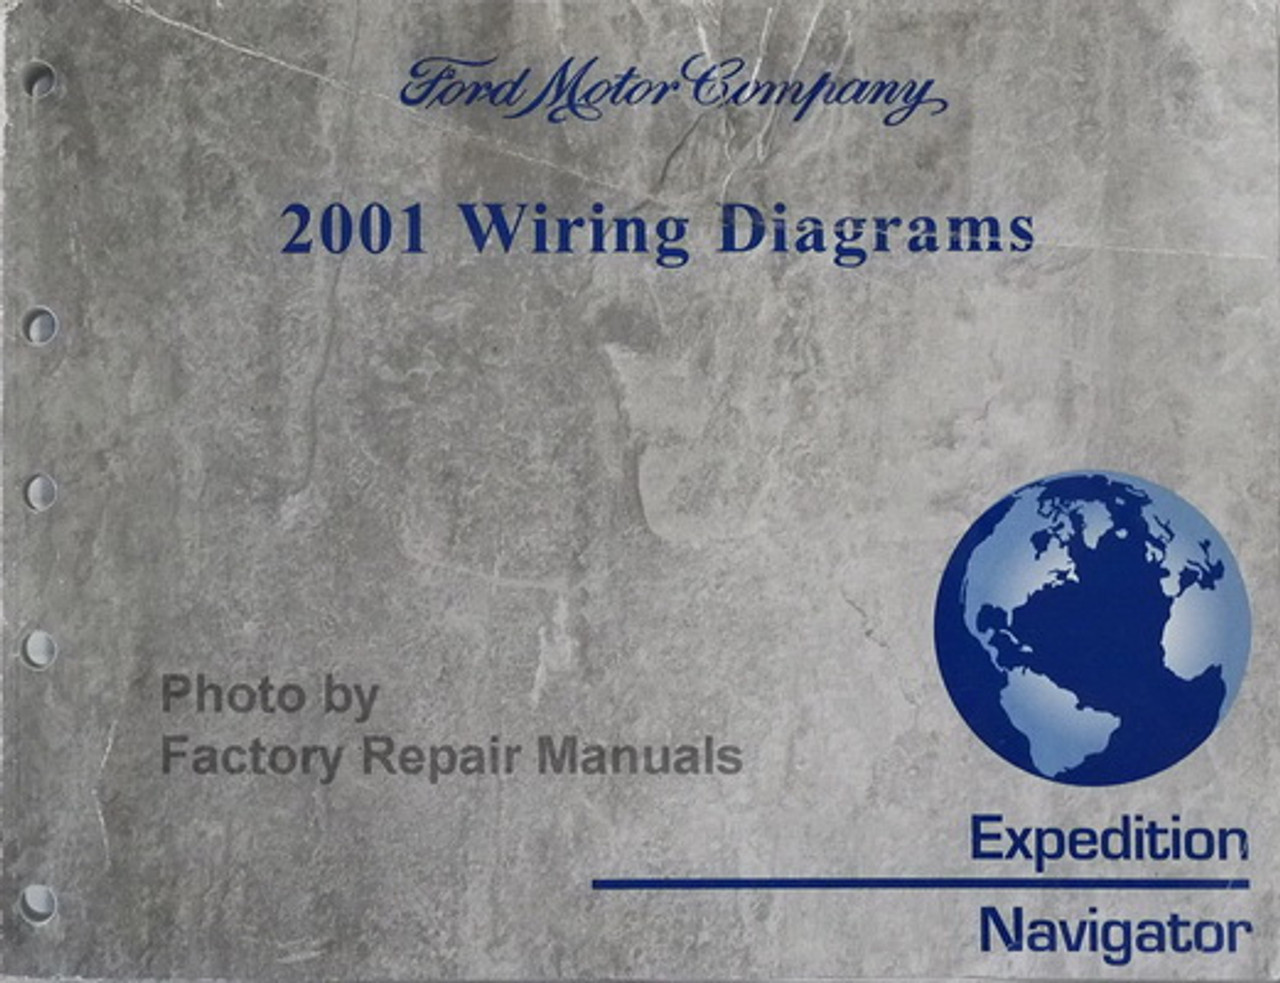 2001 2002 Ford Expedition Lincoln Navigator Electrical Wiring Diagrams Factory Repair Manuals